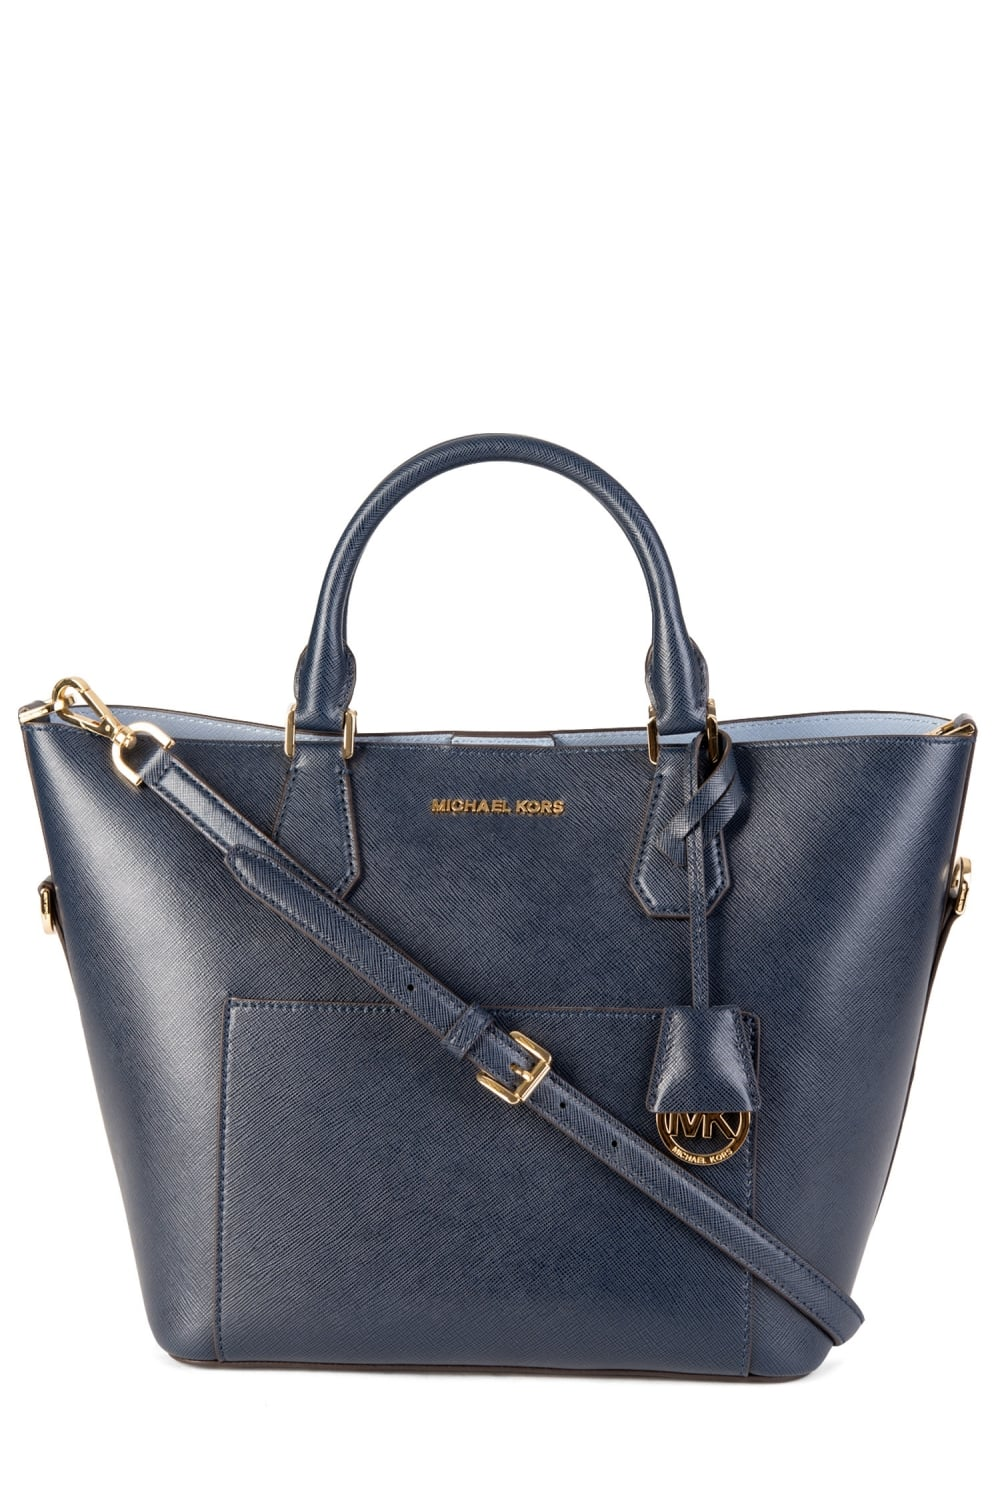 3a0fd5cad605a4 MICHAEL KORS Greenwich Large Saffiano Leather Satchel Bag - Clothing from  Circle Fashion UK